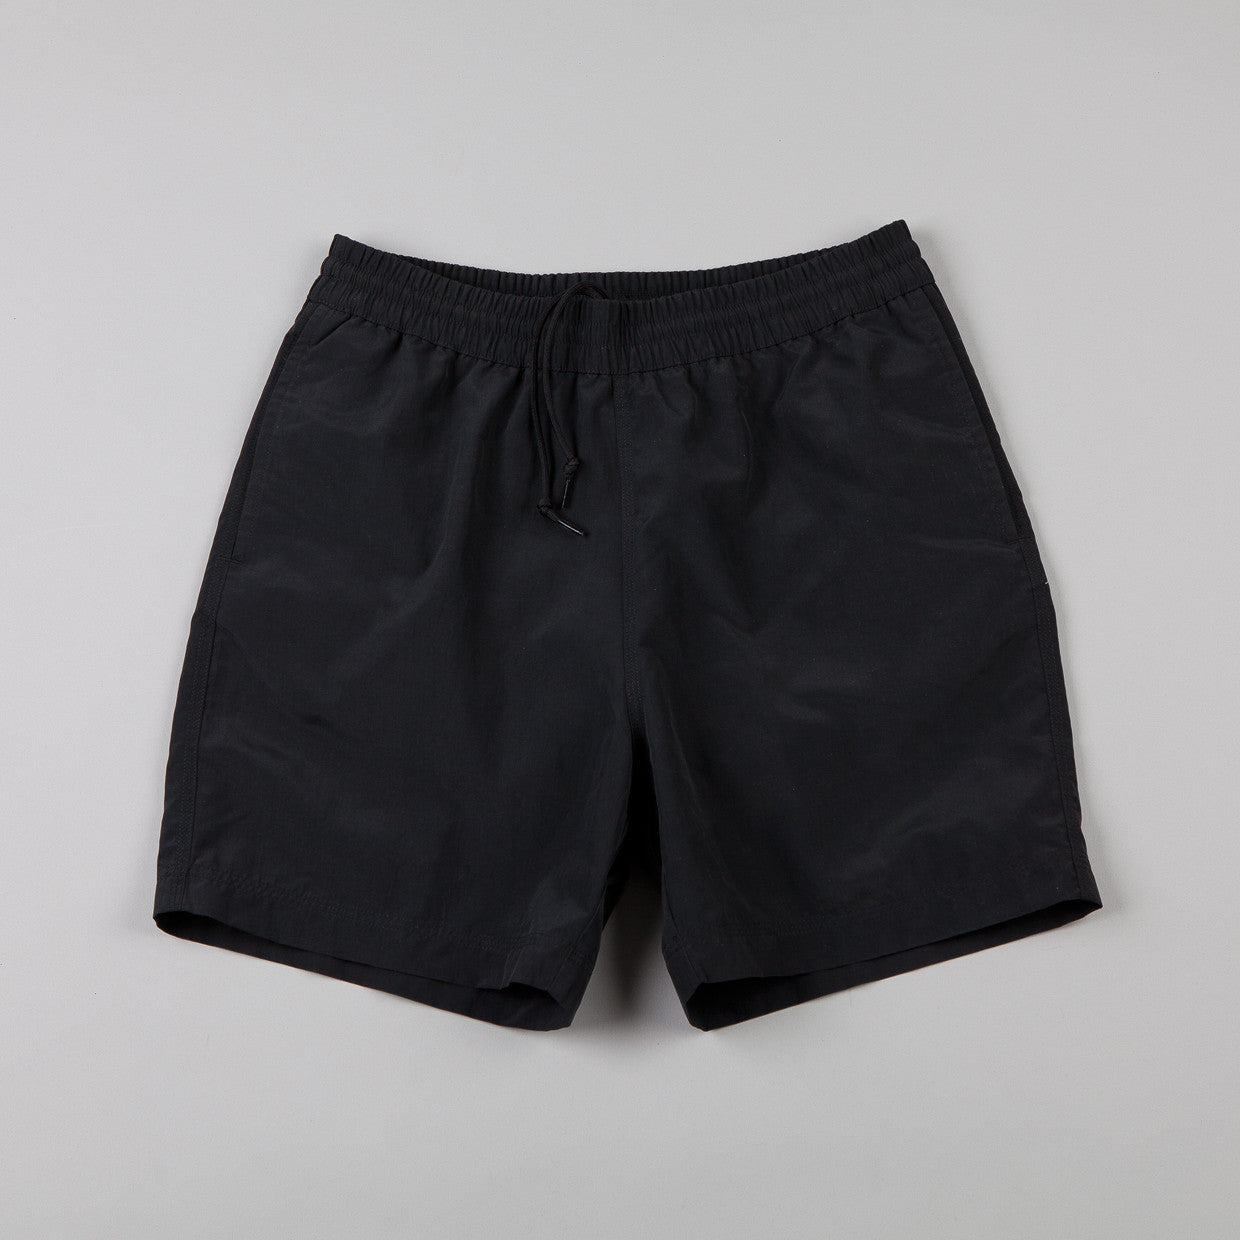 Carhartt Drift Swim Trunk Black